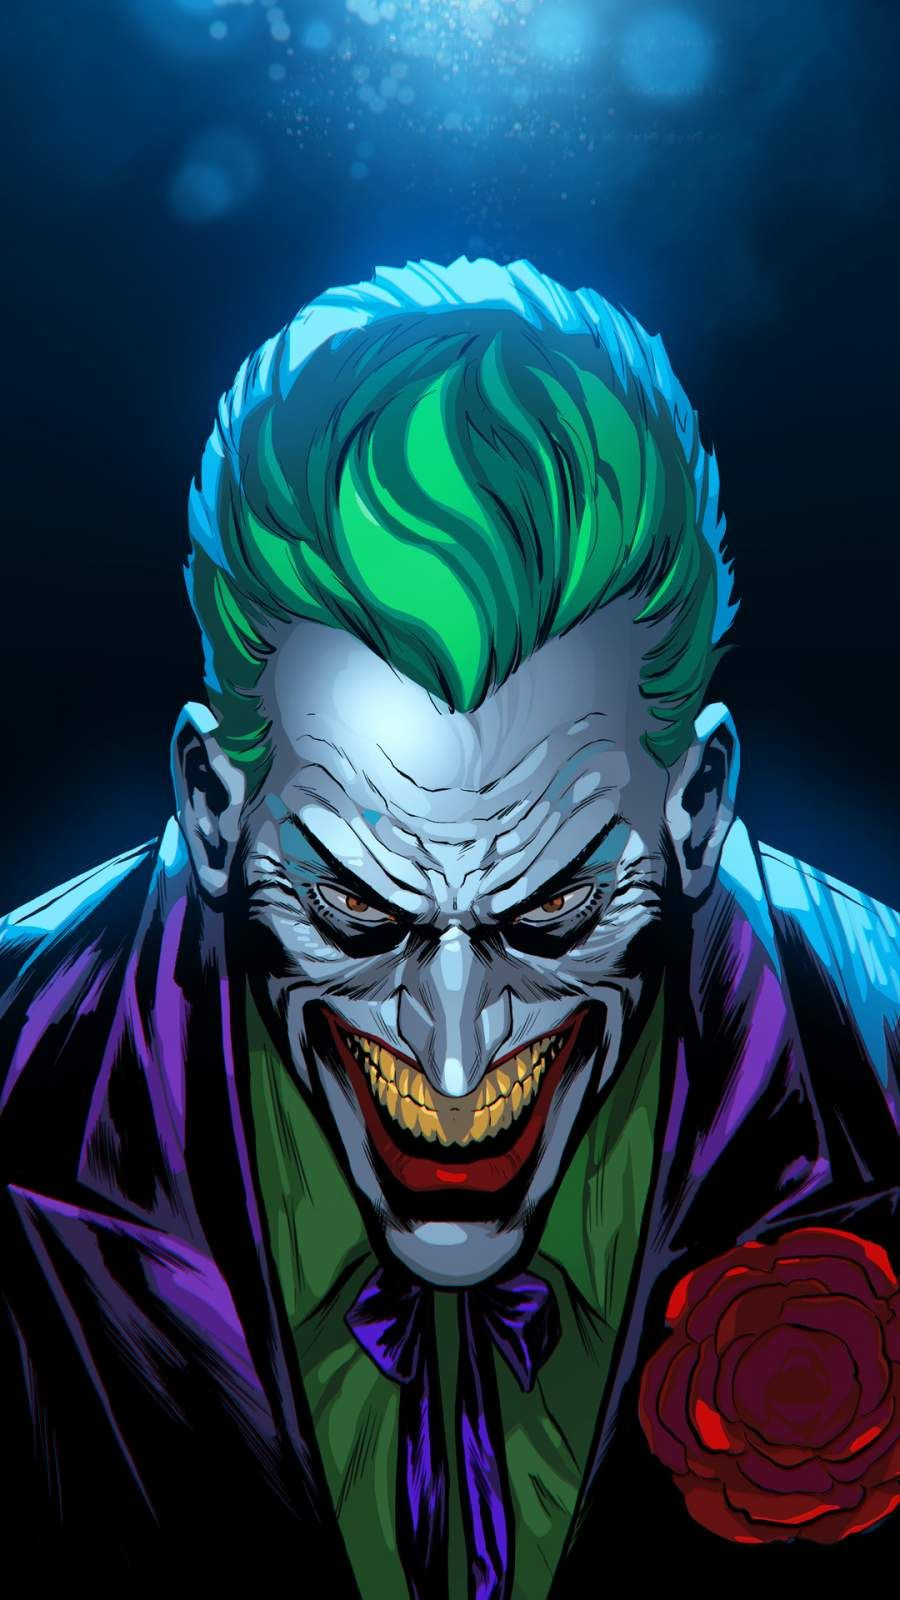 Joker Digital Art IPhone Wallpaper wallpaper